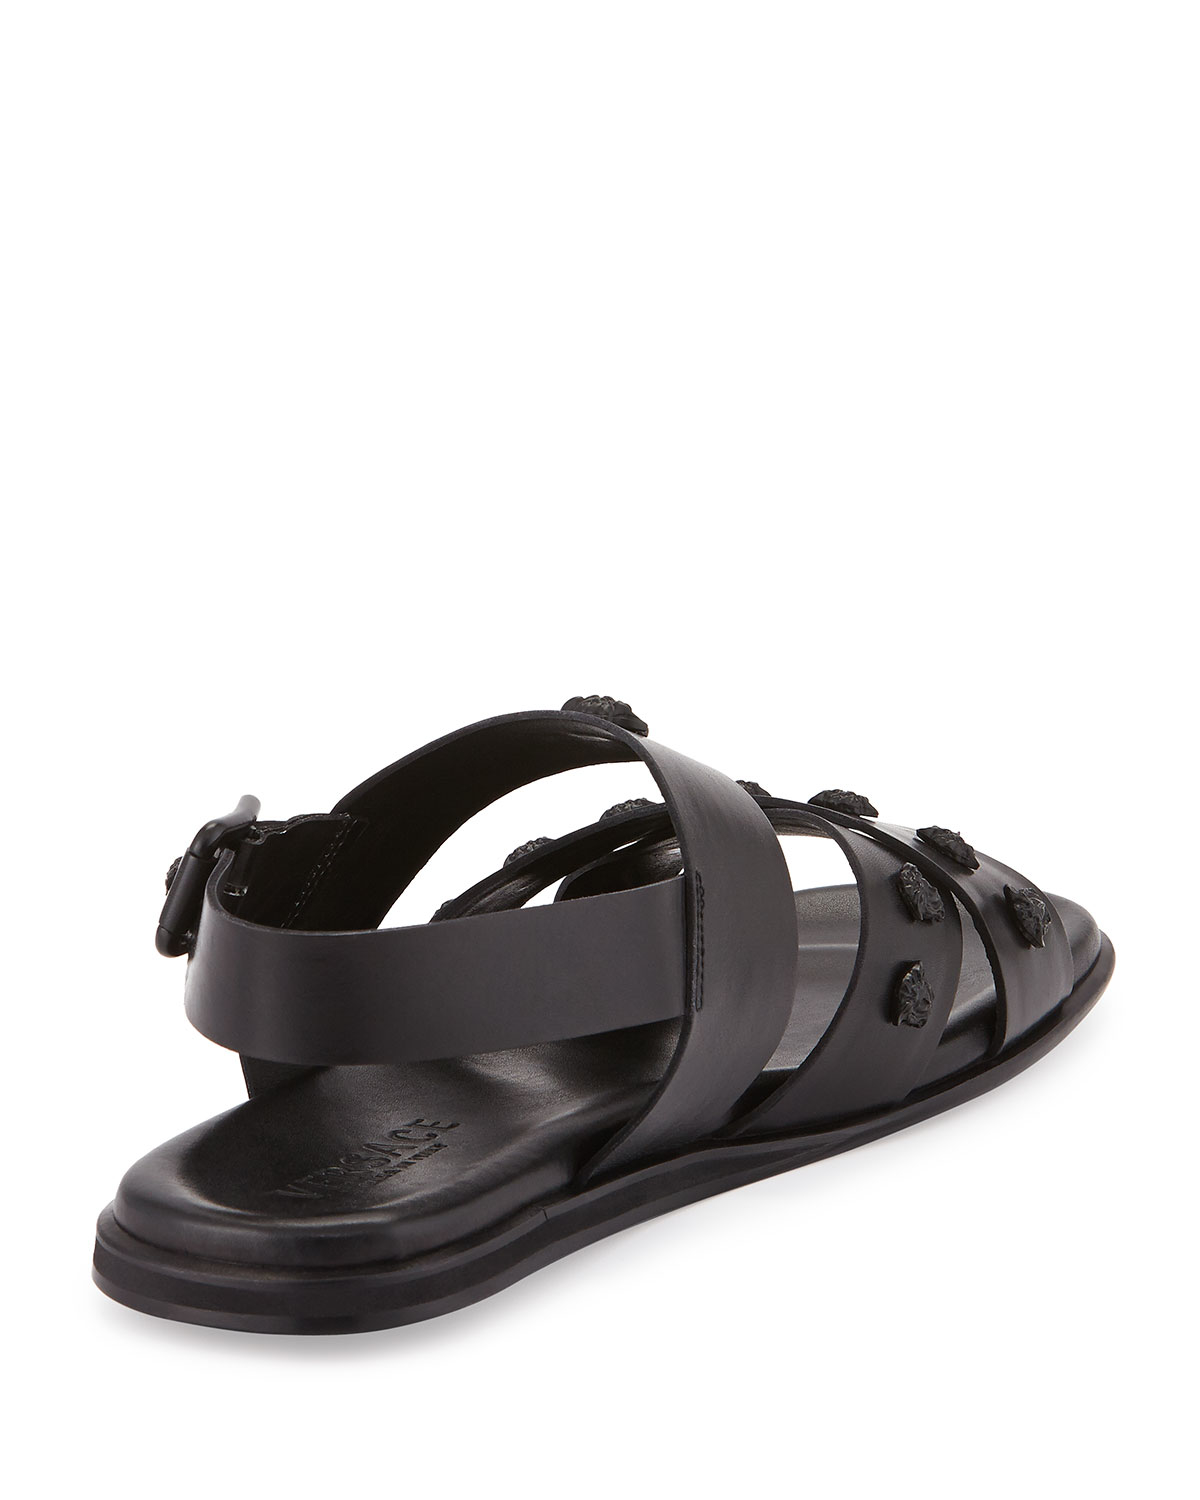 ffb05e717 Lyst - Versace Men s Leather Strappy Sandal in Black for Men